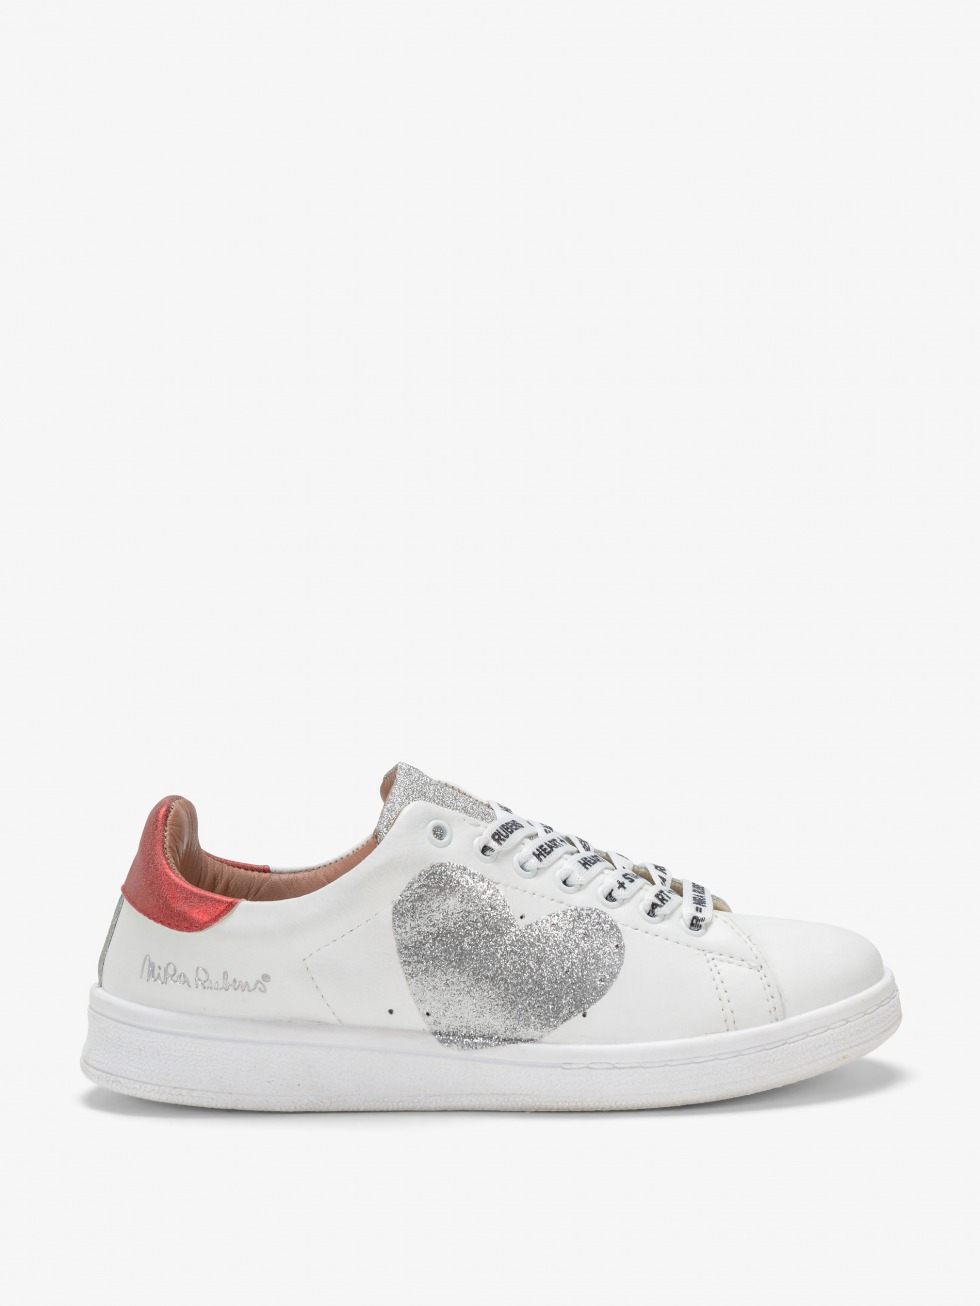 Daiquiri Shine Red Sneakers - Silver Heart